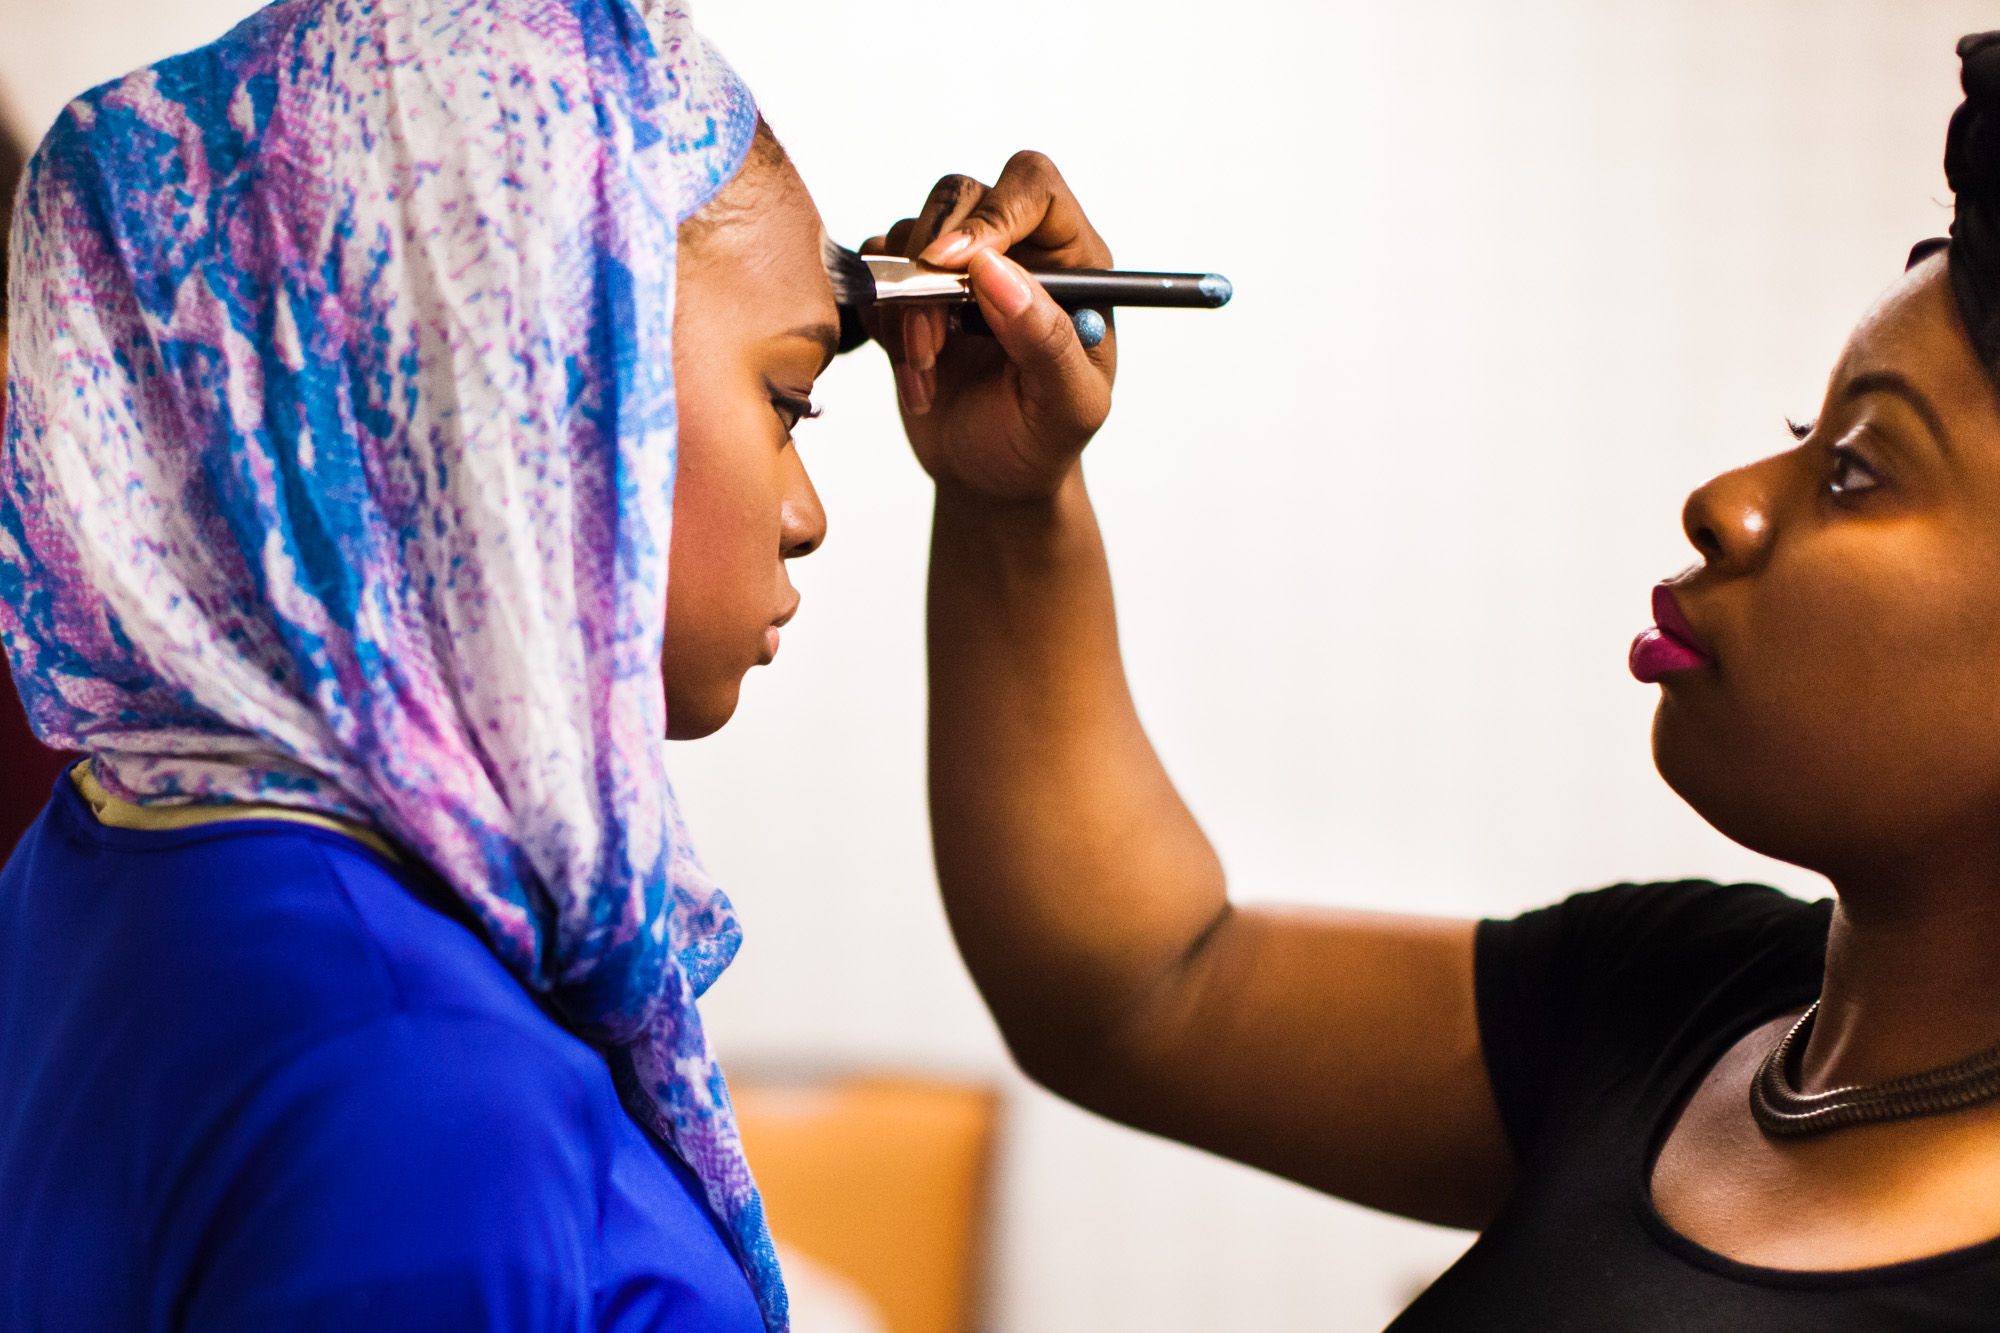 Jalila Ahmad gets her makeup done by Christelle Francois. Reaching All HIV+ Muslims in America (RAHMA) hosted a fashion show in Washington, DC on Aug. 16, 2014. The clothing and accessories are all made by Muslim women designers from around the US. They specialize in creating modest fashion that complies with Islamic tradition.